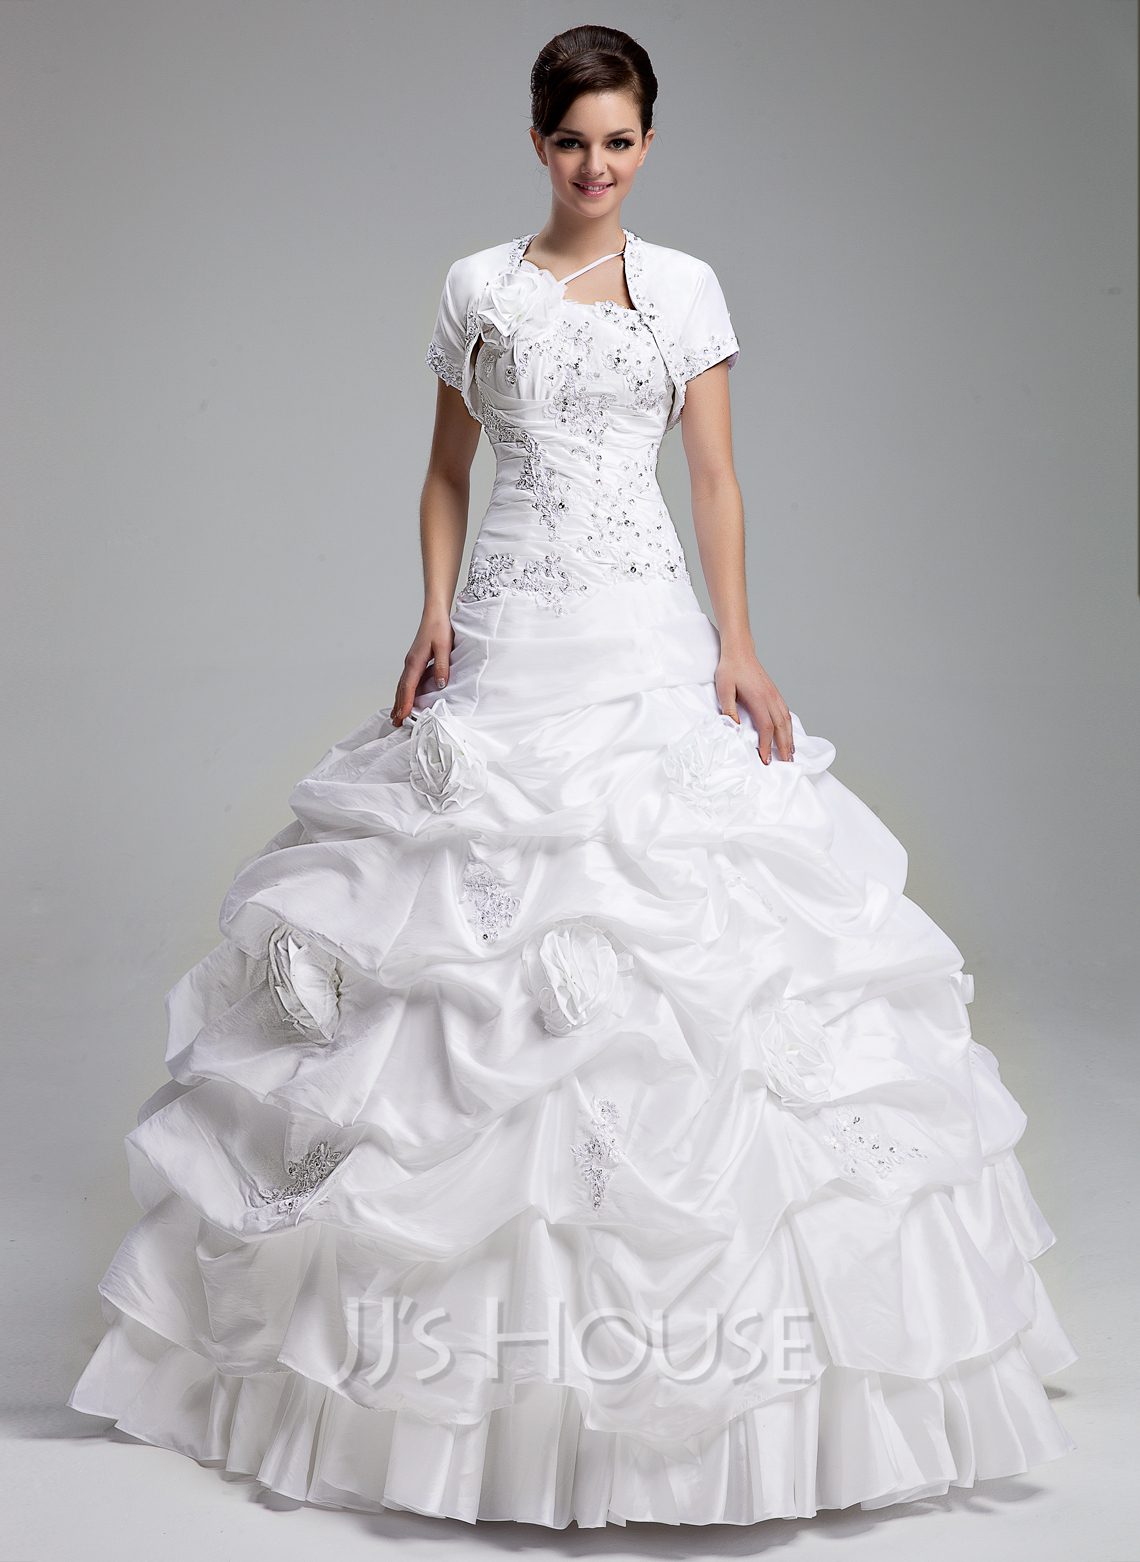 d312f300c13 Ball-Gown One-Shoulder Floor-Length Taffeta Quinceanera Dress With Ruffle Beading  Appliques. Loading zoom